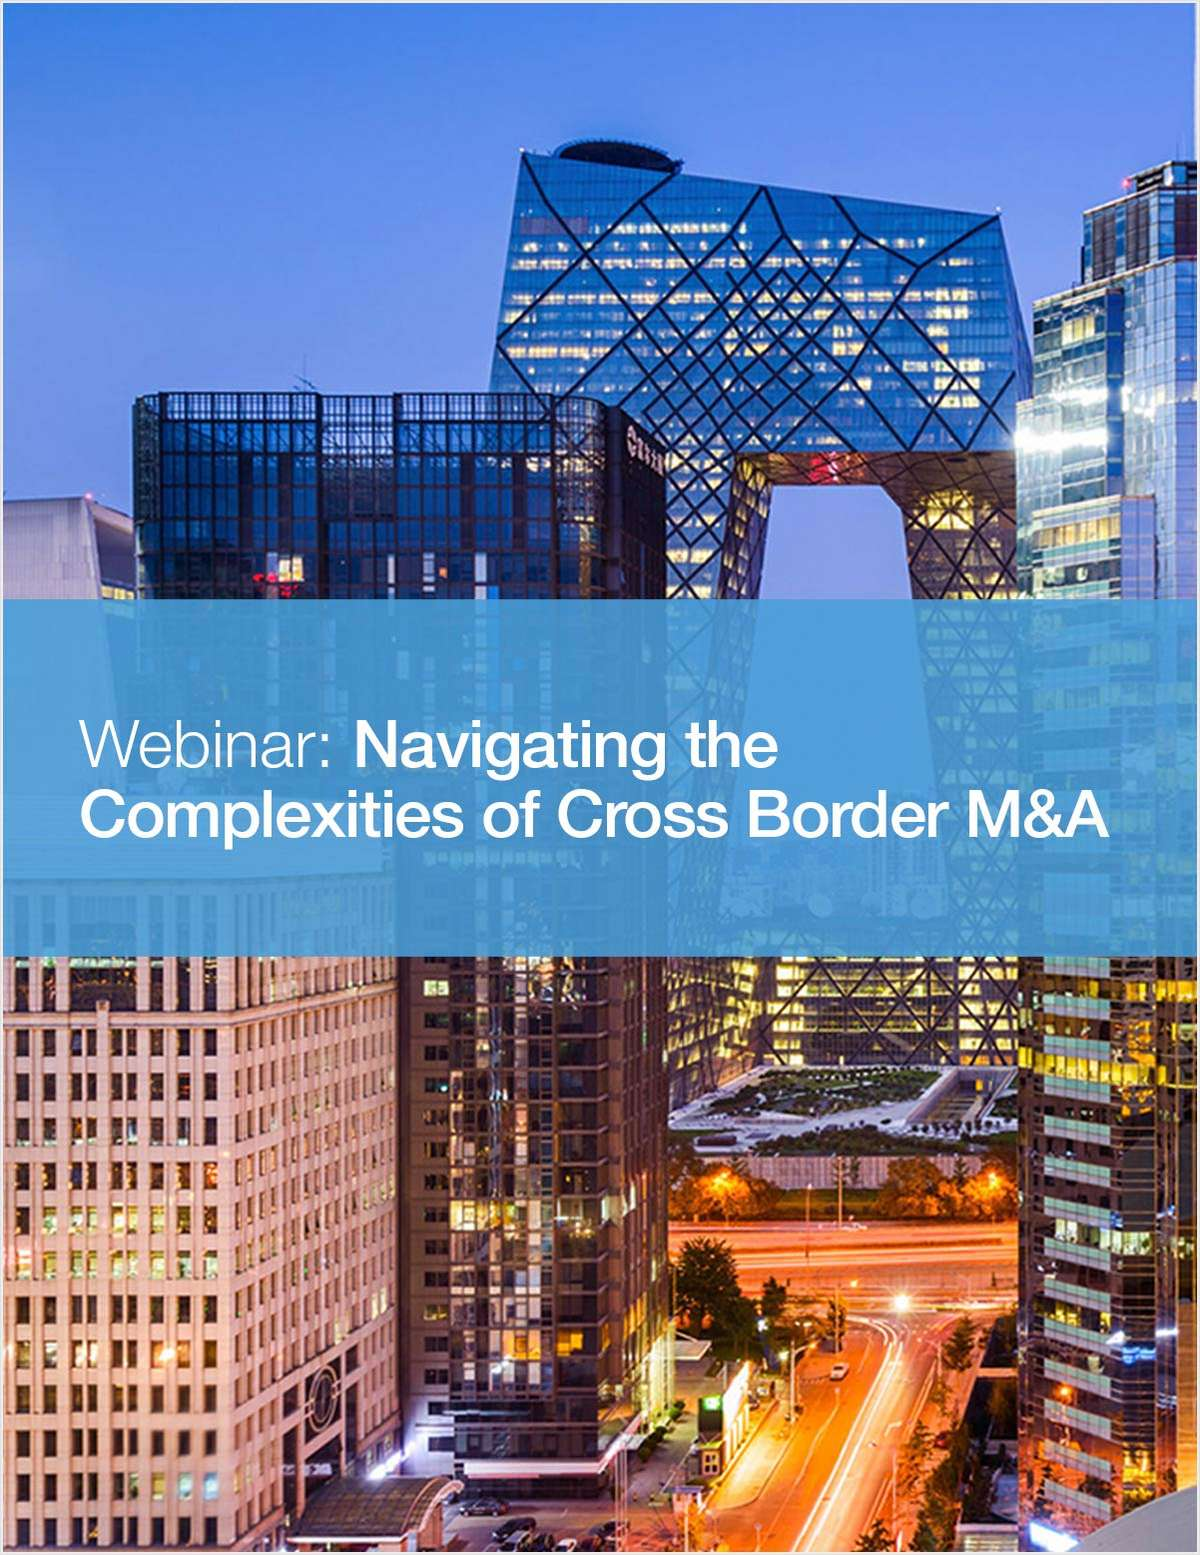 Webinar: Navigating the Complexities of Cross Border M&A